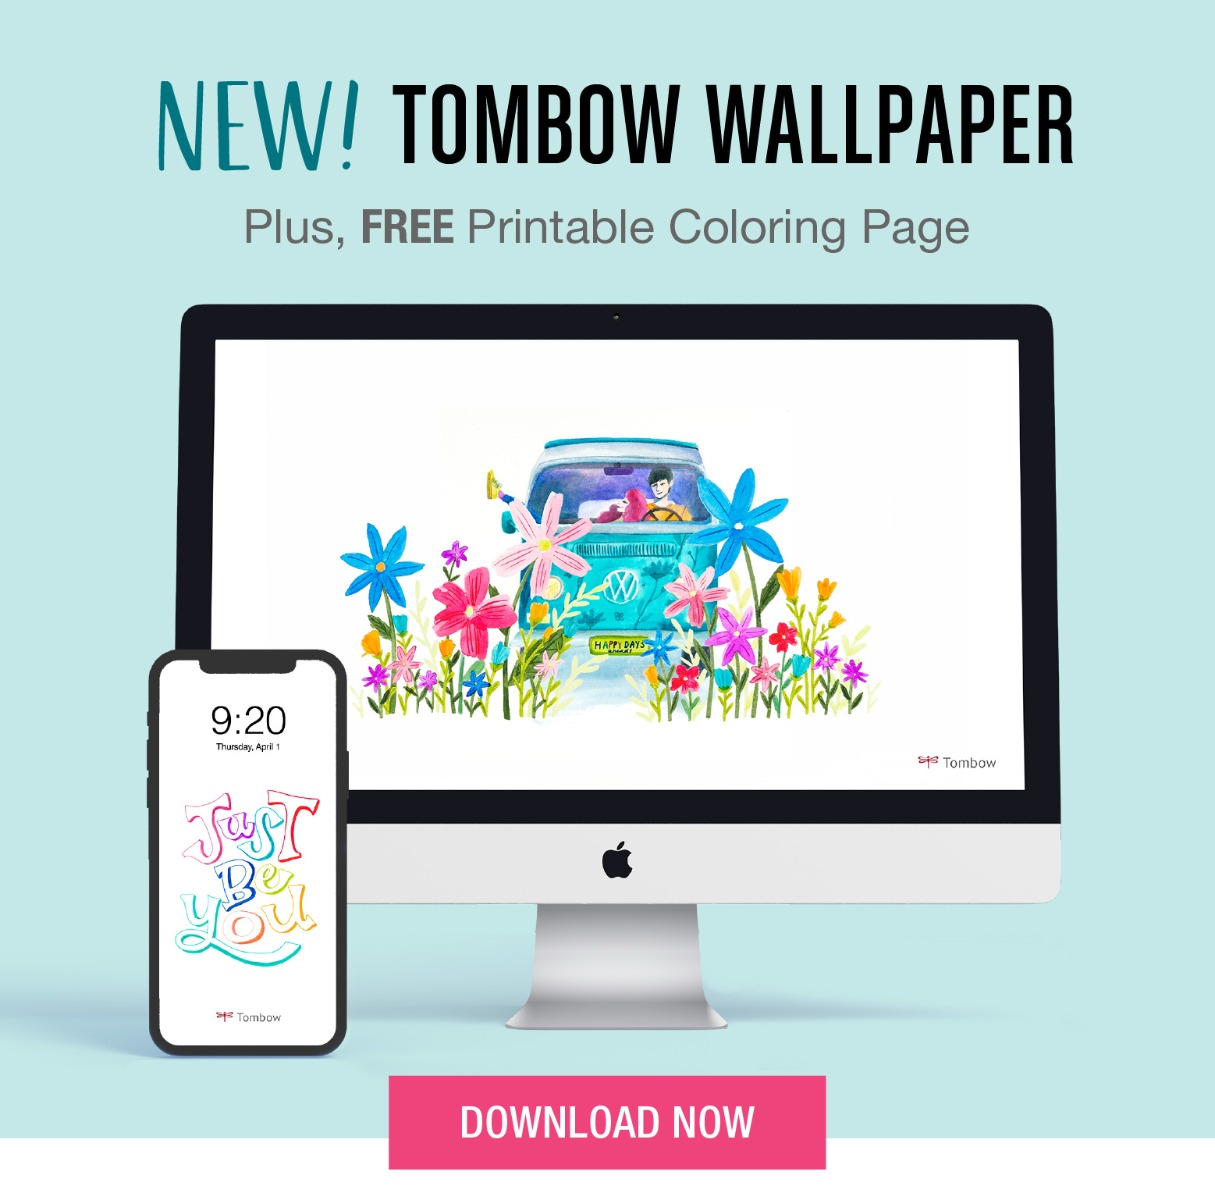 New Wallpapers for your desktop and phone! Plus, free coloring worksheet. Download Now!